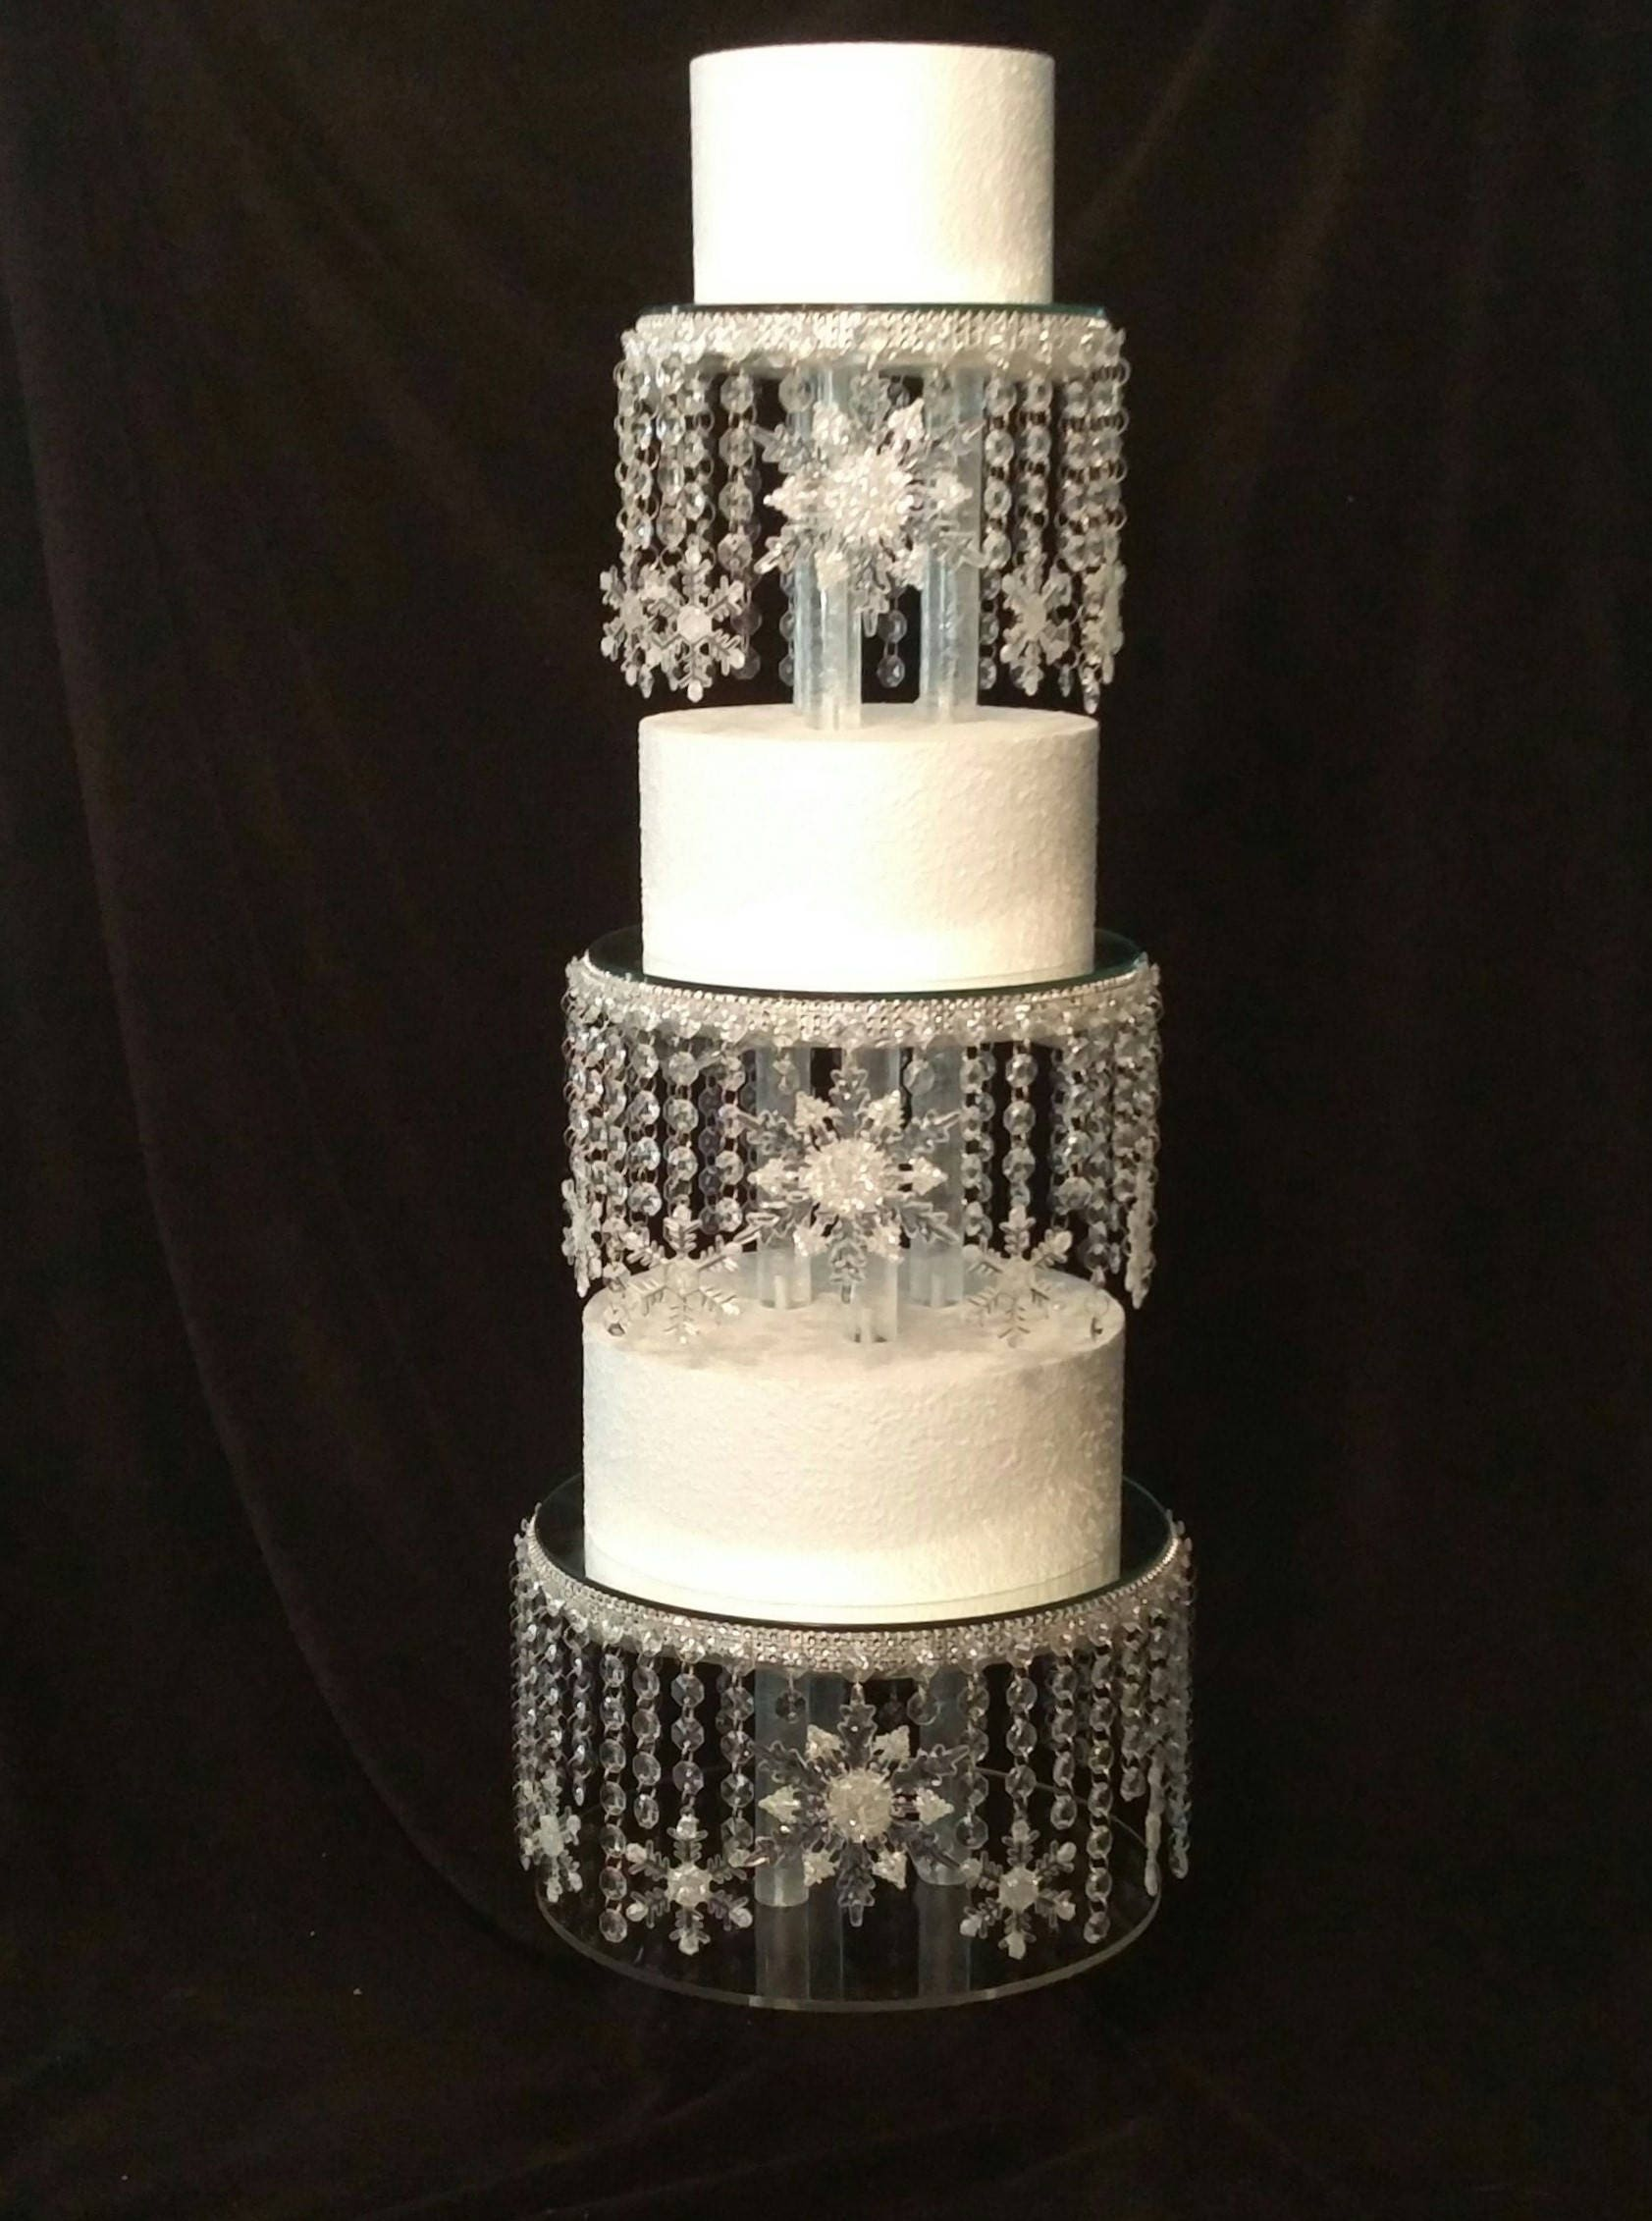 Crystal Snowflake Cake Stand Diamante cake stand for a Winter